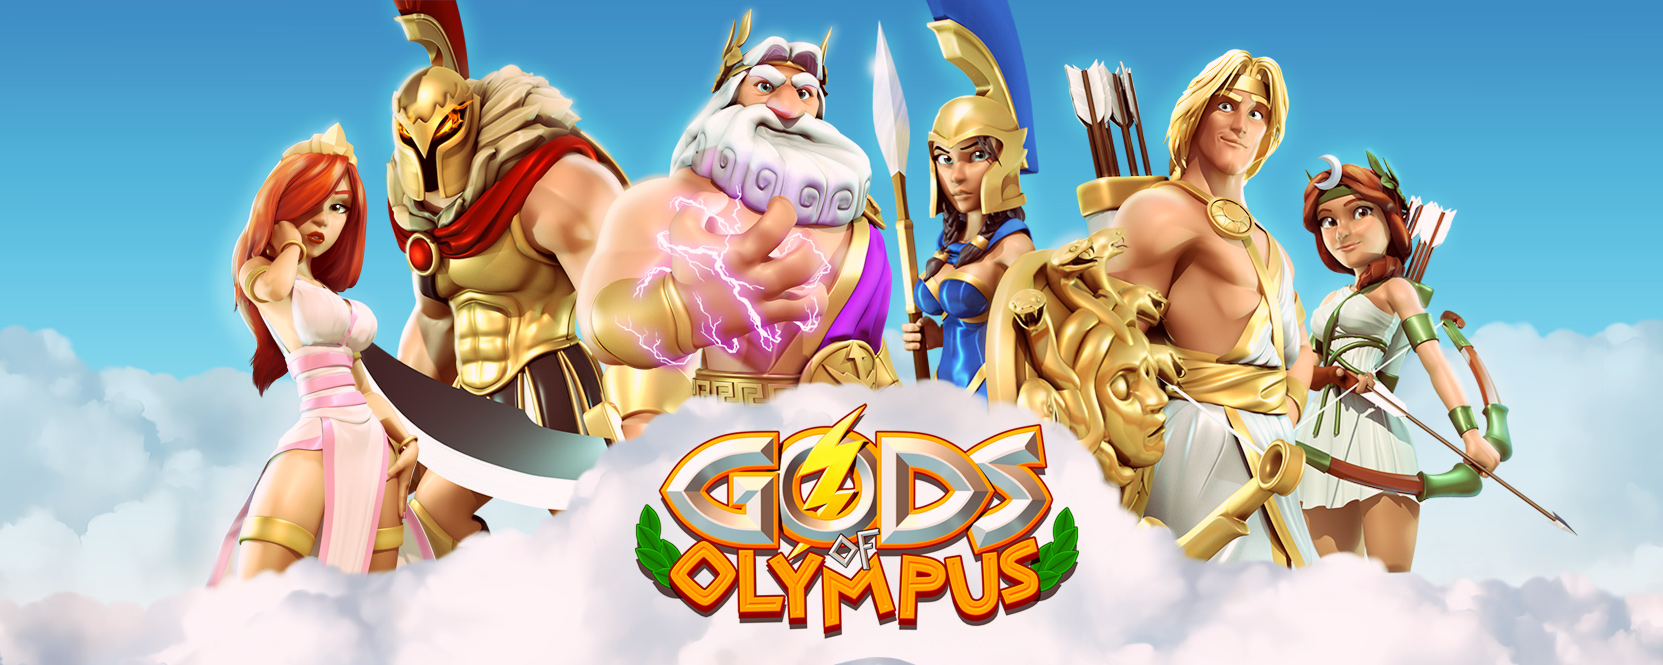 gods of olympus The olympos xii manage the digital world: iliad, which exists on a different server from the digital world ruled by  • (en:) 12 gods of olympus.